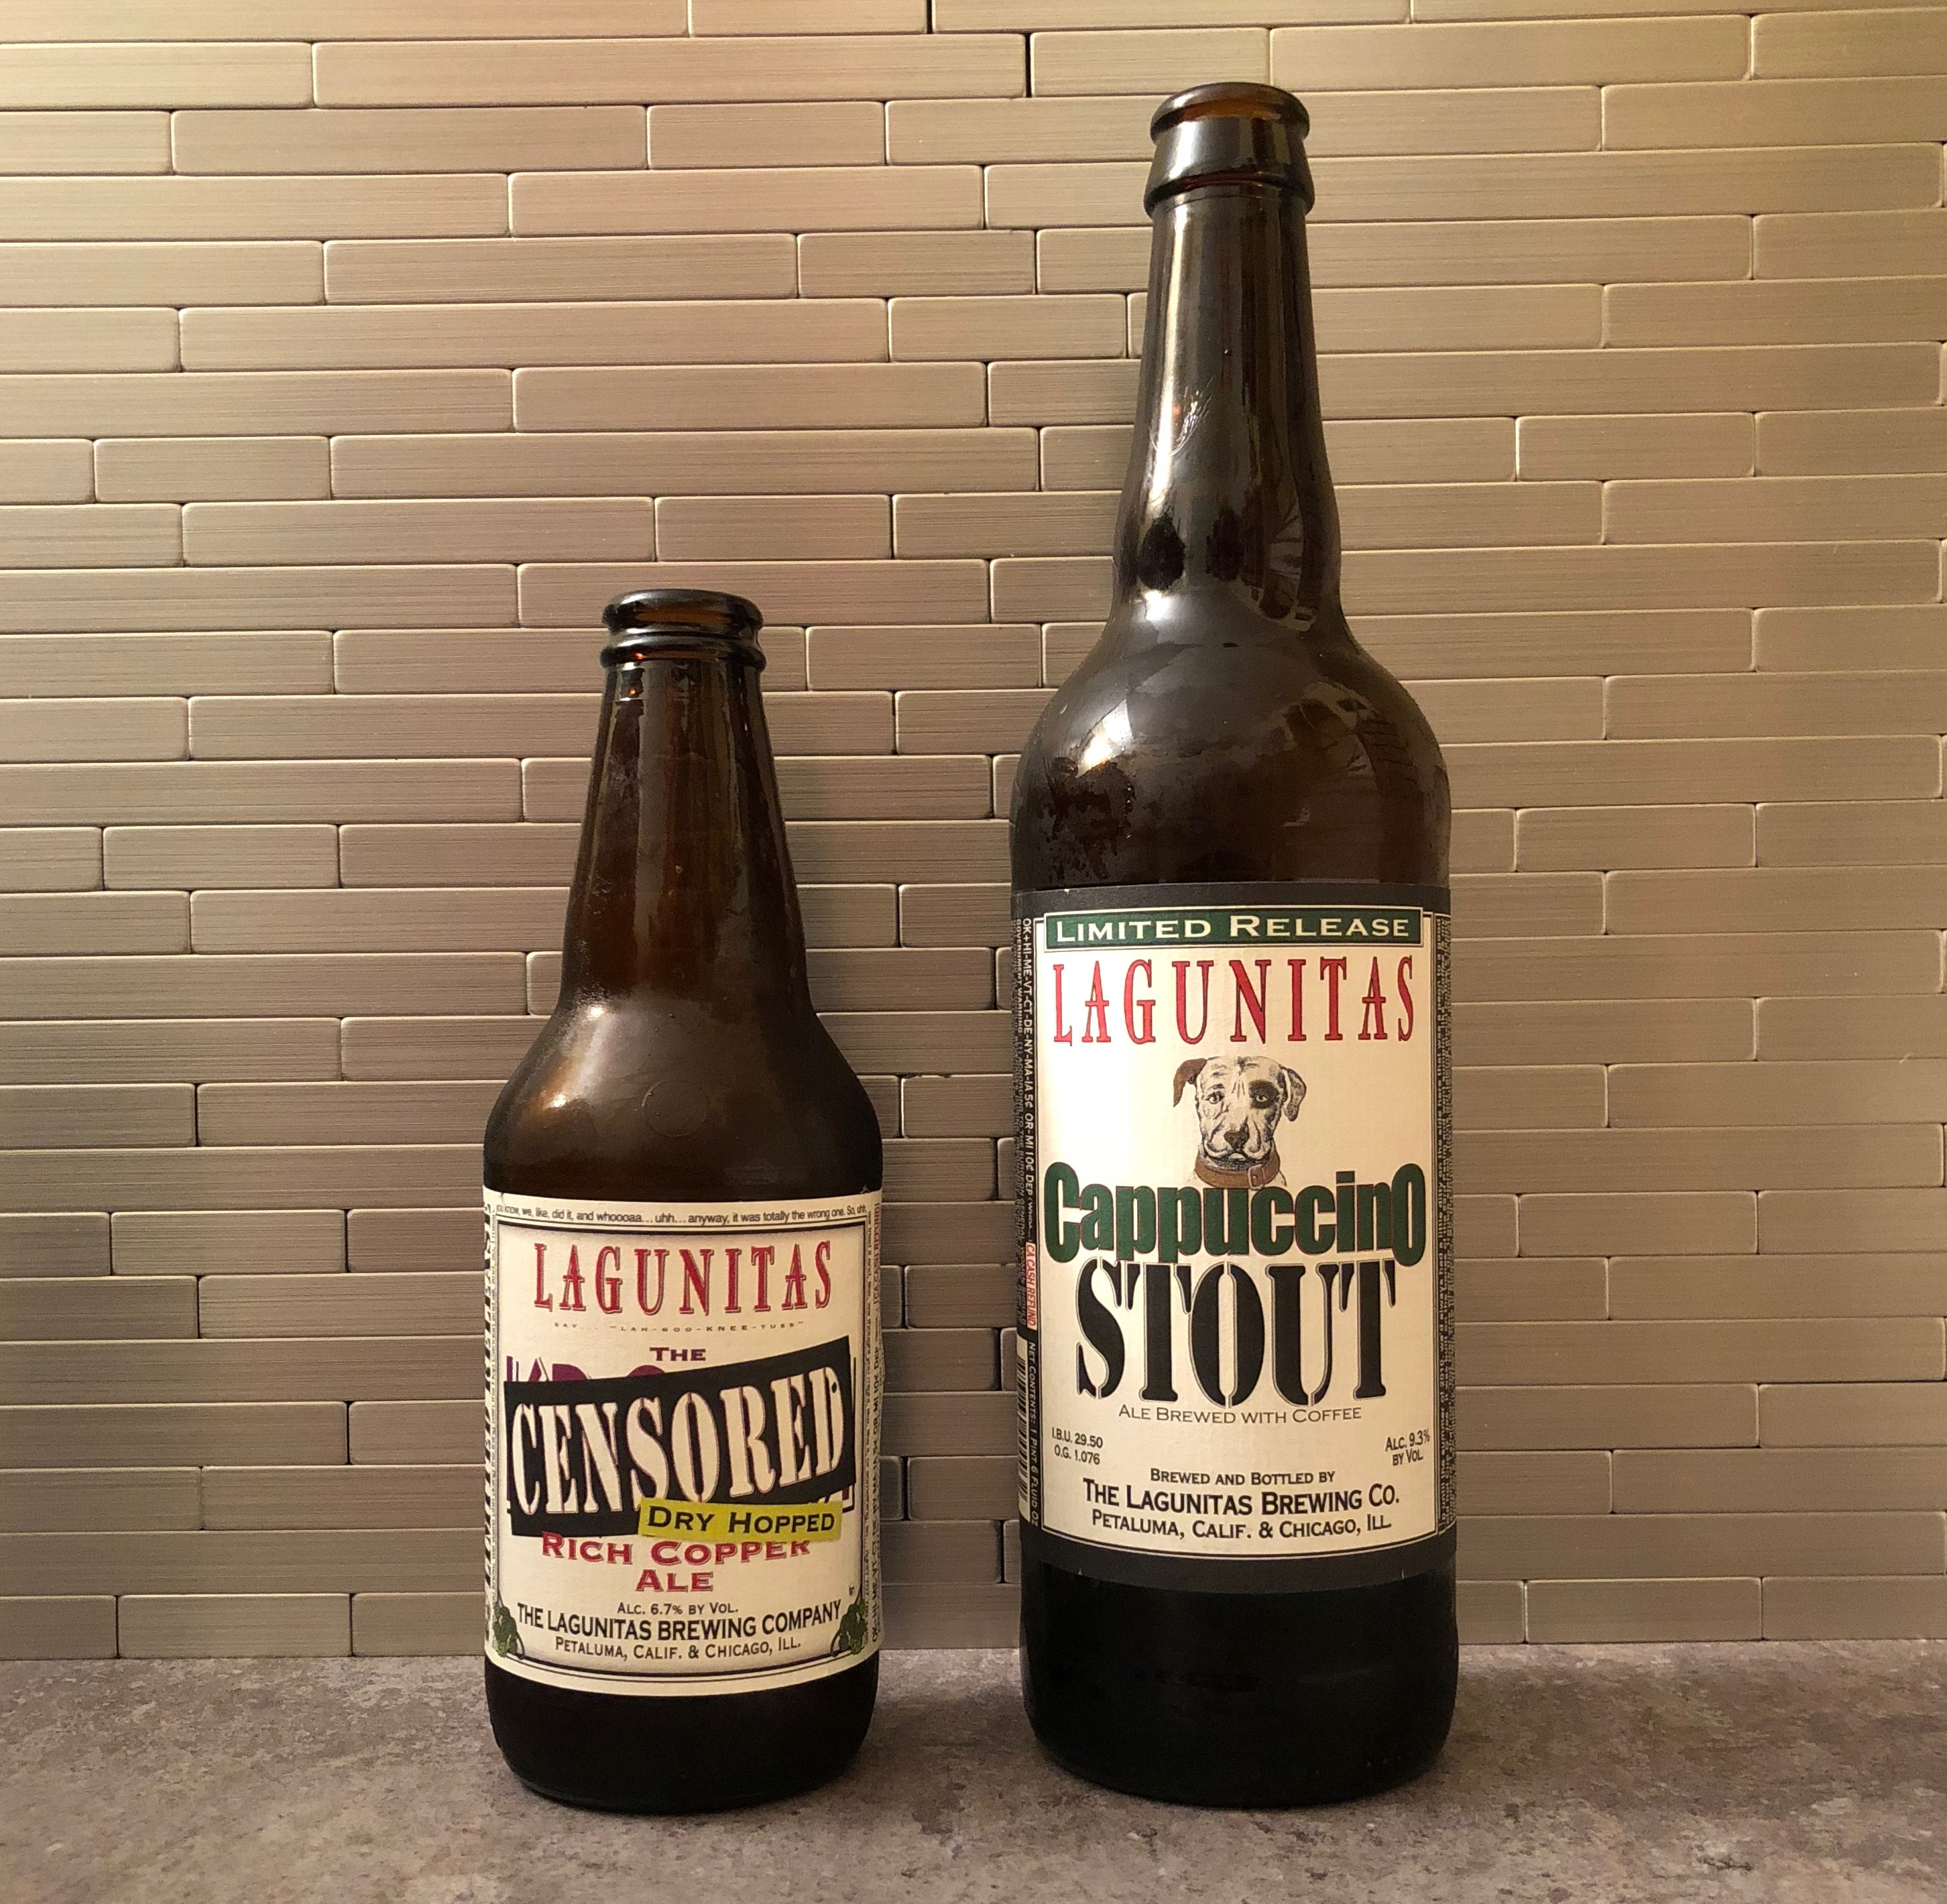 Lagunitas Brewing's Dry Hopped Censored Ale and Cappuccino Stout